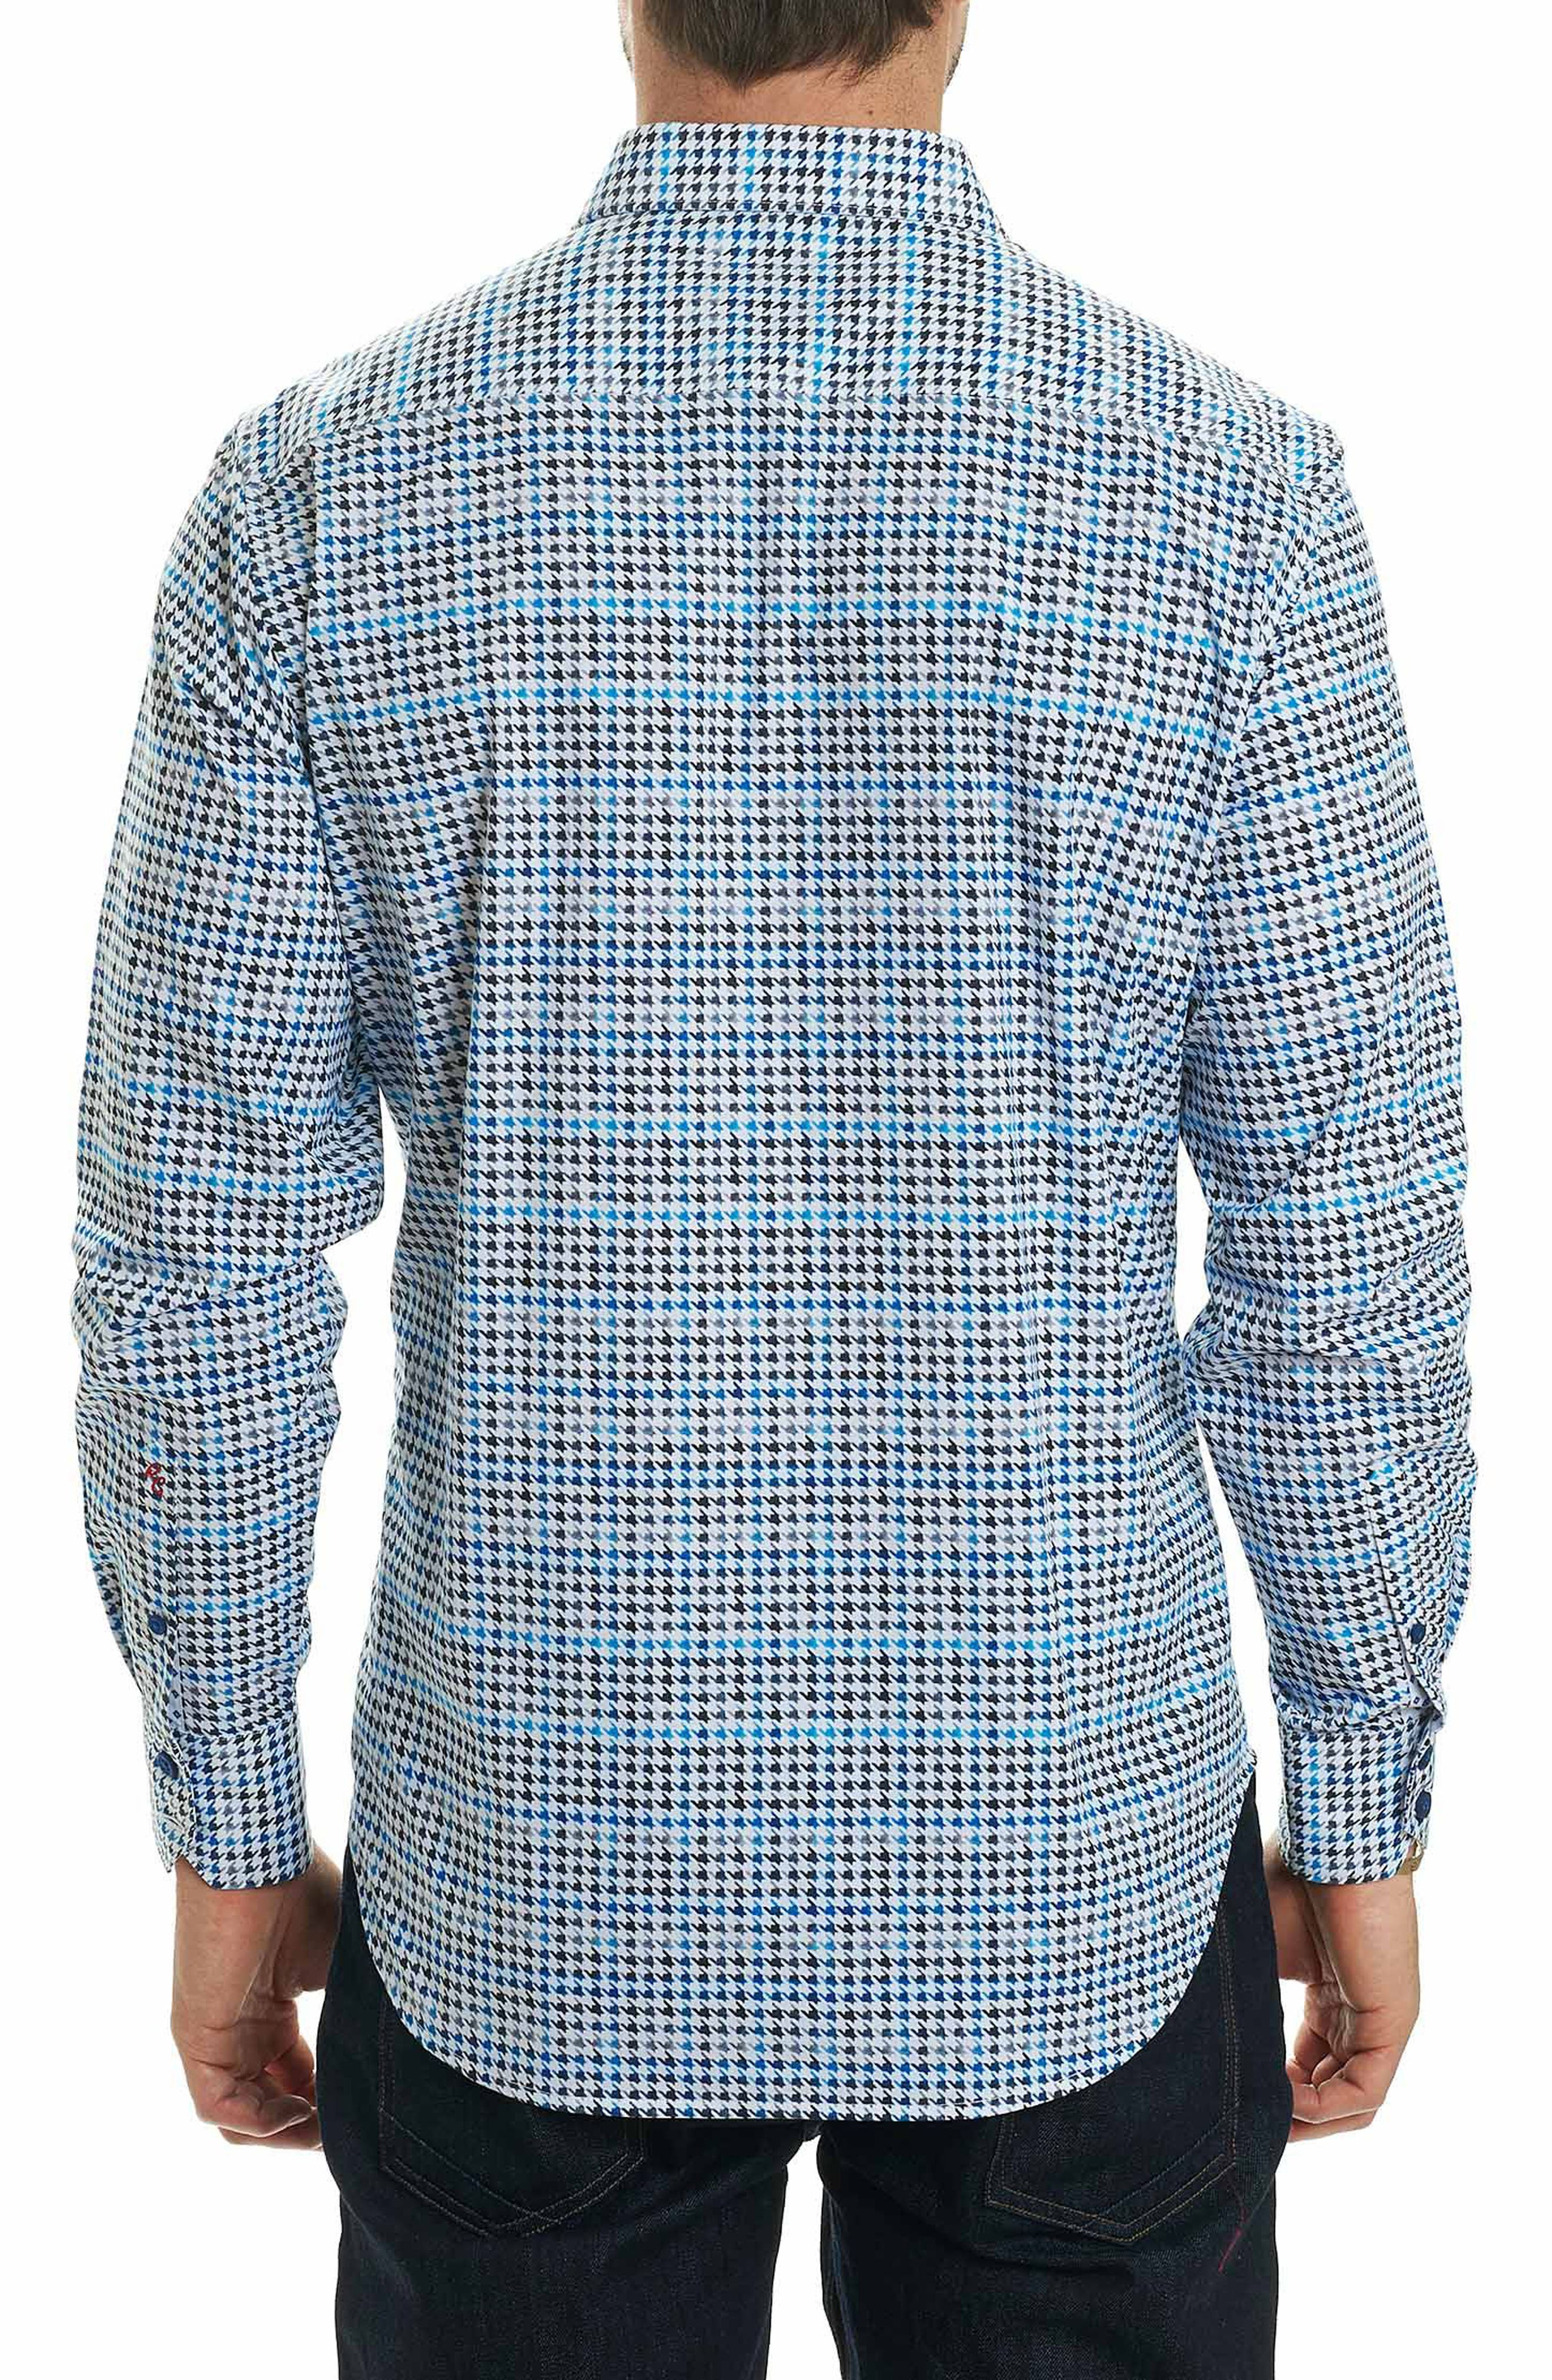 Rolf Classic Fit Houndstooth Print Sport Shirt,                             Alternate thumbnail 2, color,                             White